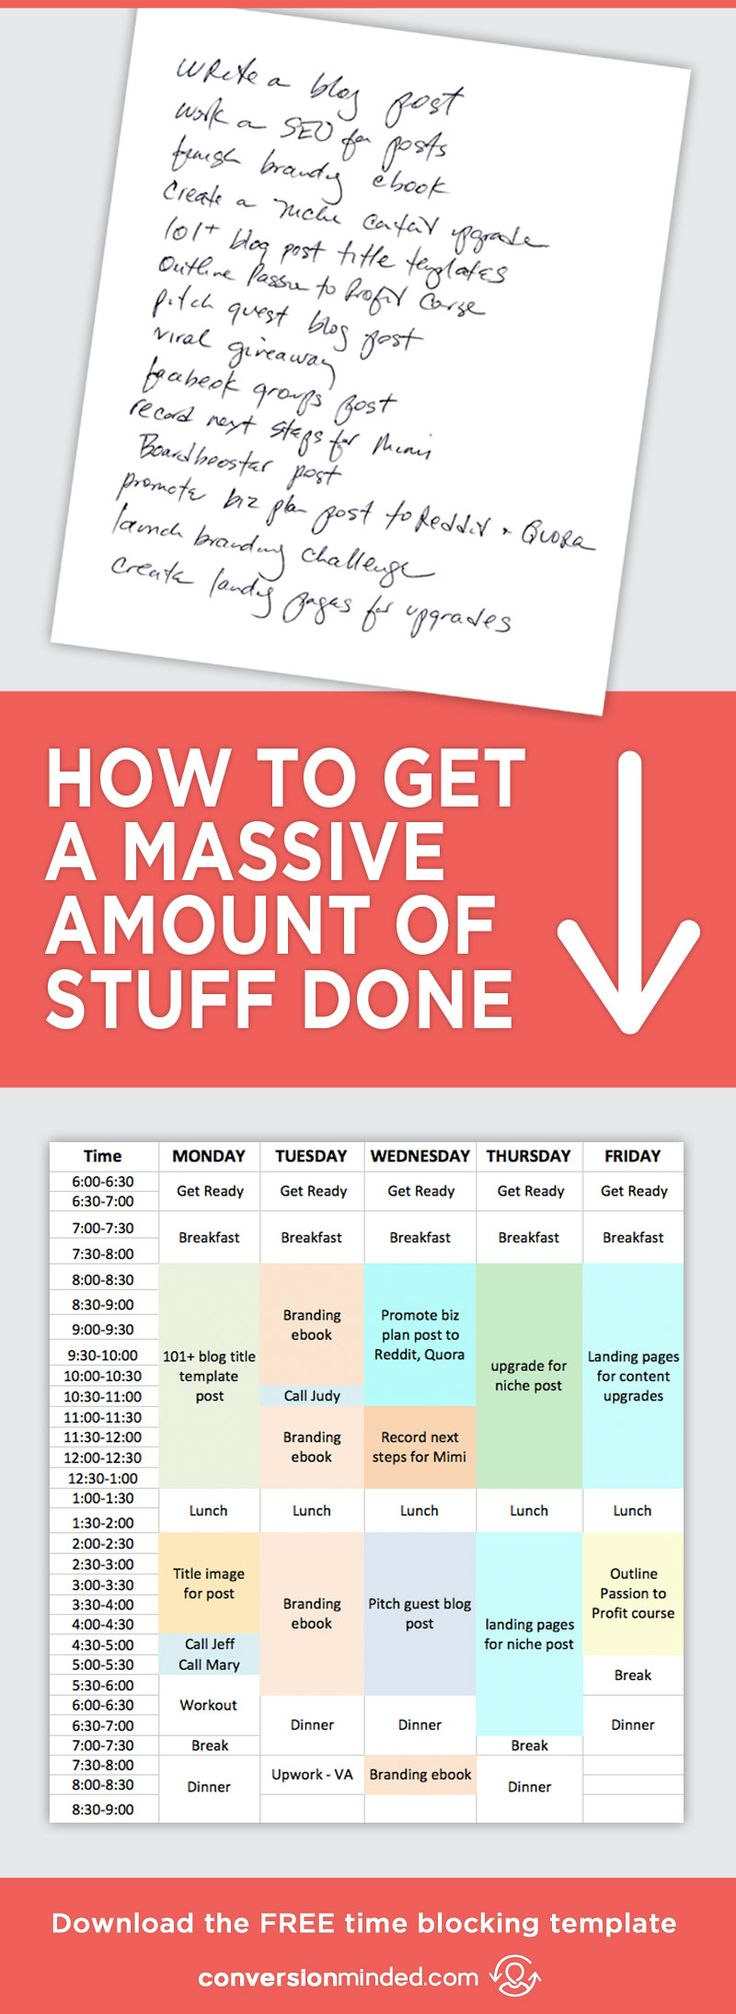 How to Stay Super Productive + Get a Massive Amount of Stuff Done | Ready to turn your to-do list into an Action Plan? This guide for entrepreneurs and bloggers will help you prioritize goals and tasks. It also includes my secret productivity weapon – the Time Block Template.